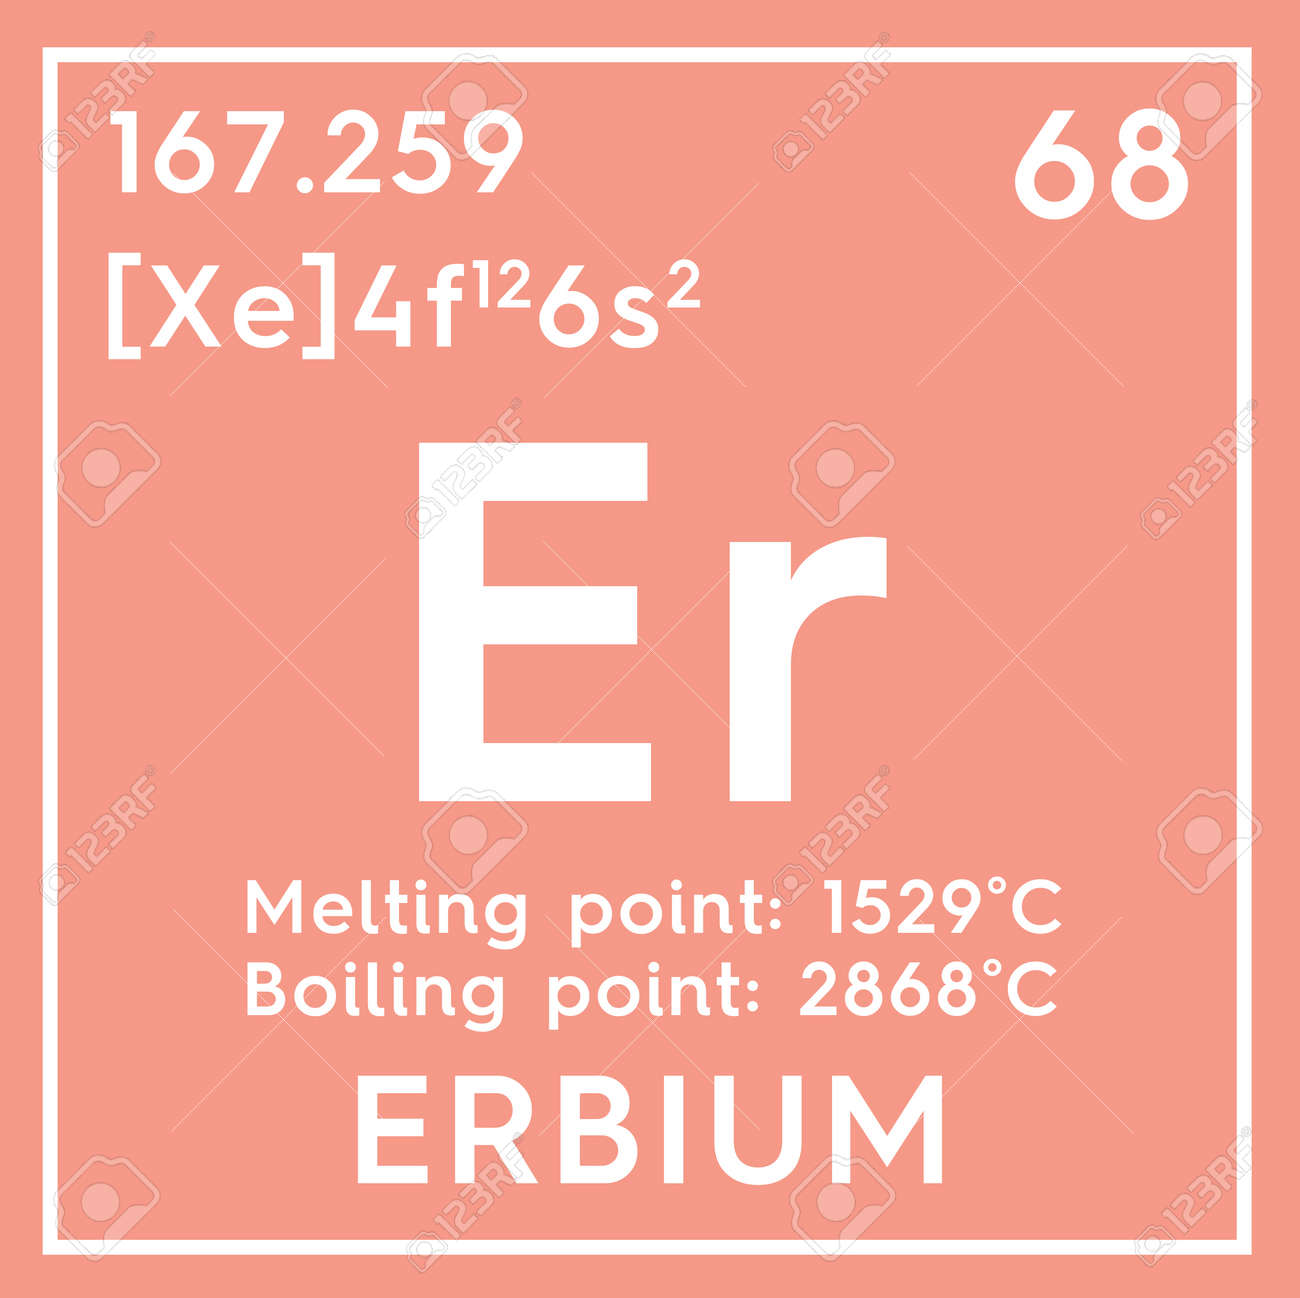 U element periodic table images periodic table images chemical symbol er armitron md0699 value chain diagram example erbium chemical element periodic table political map gamestrikefo Image collections